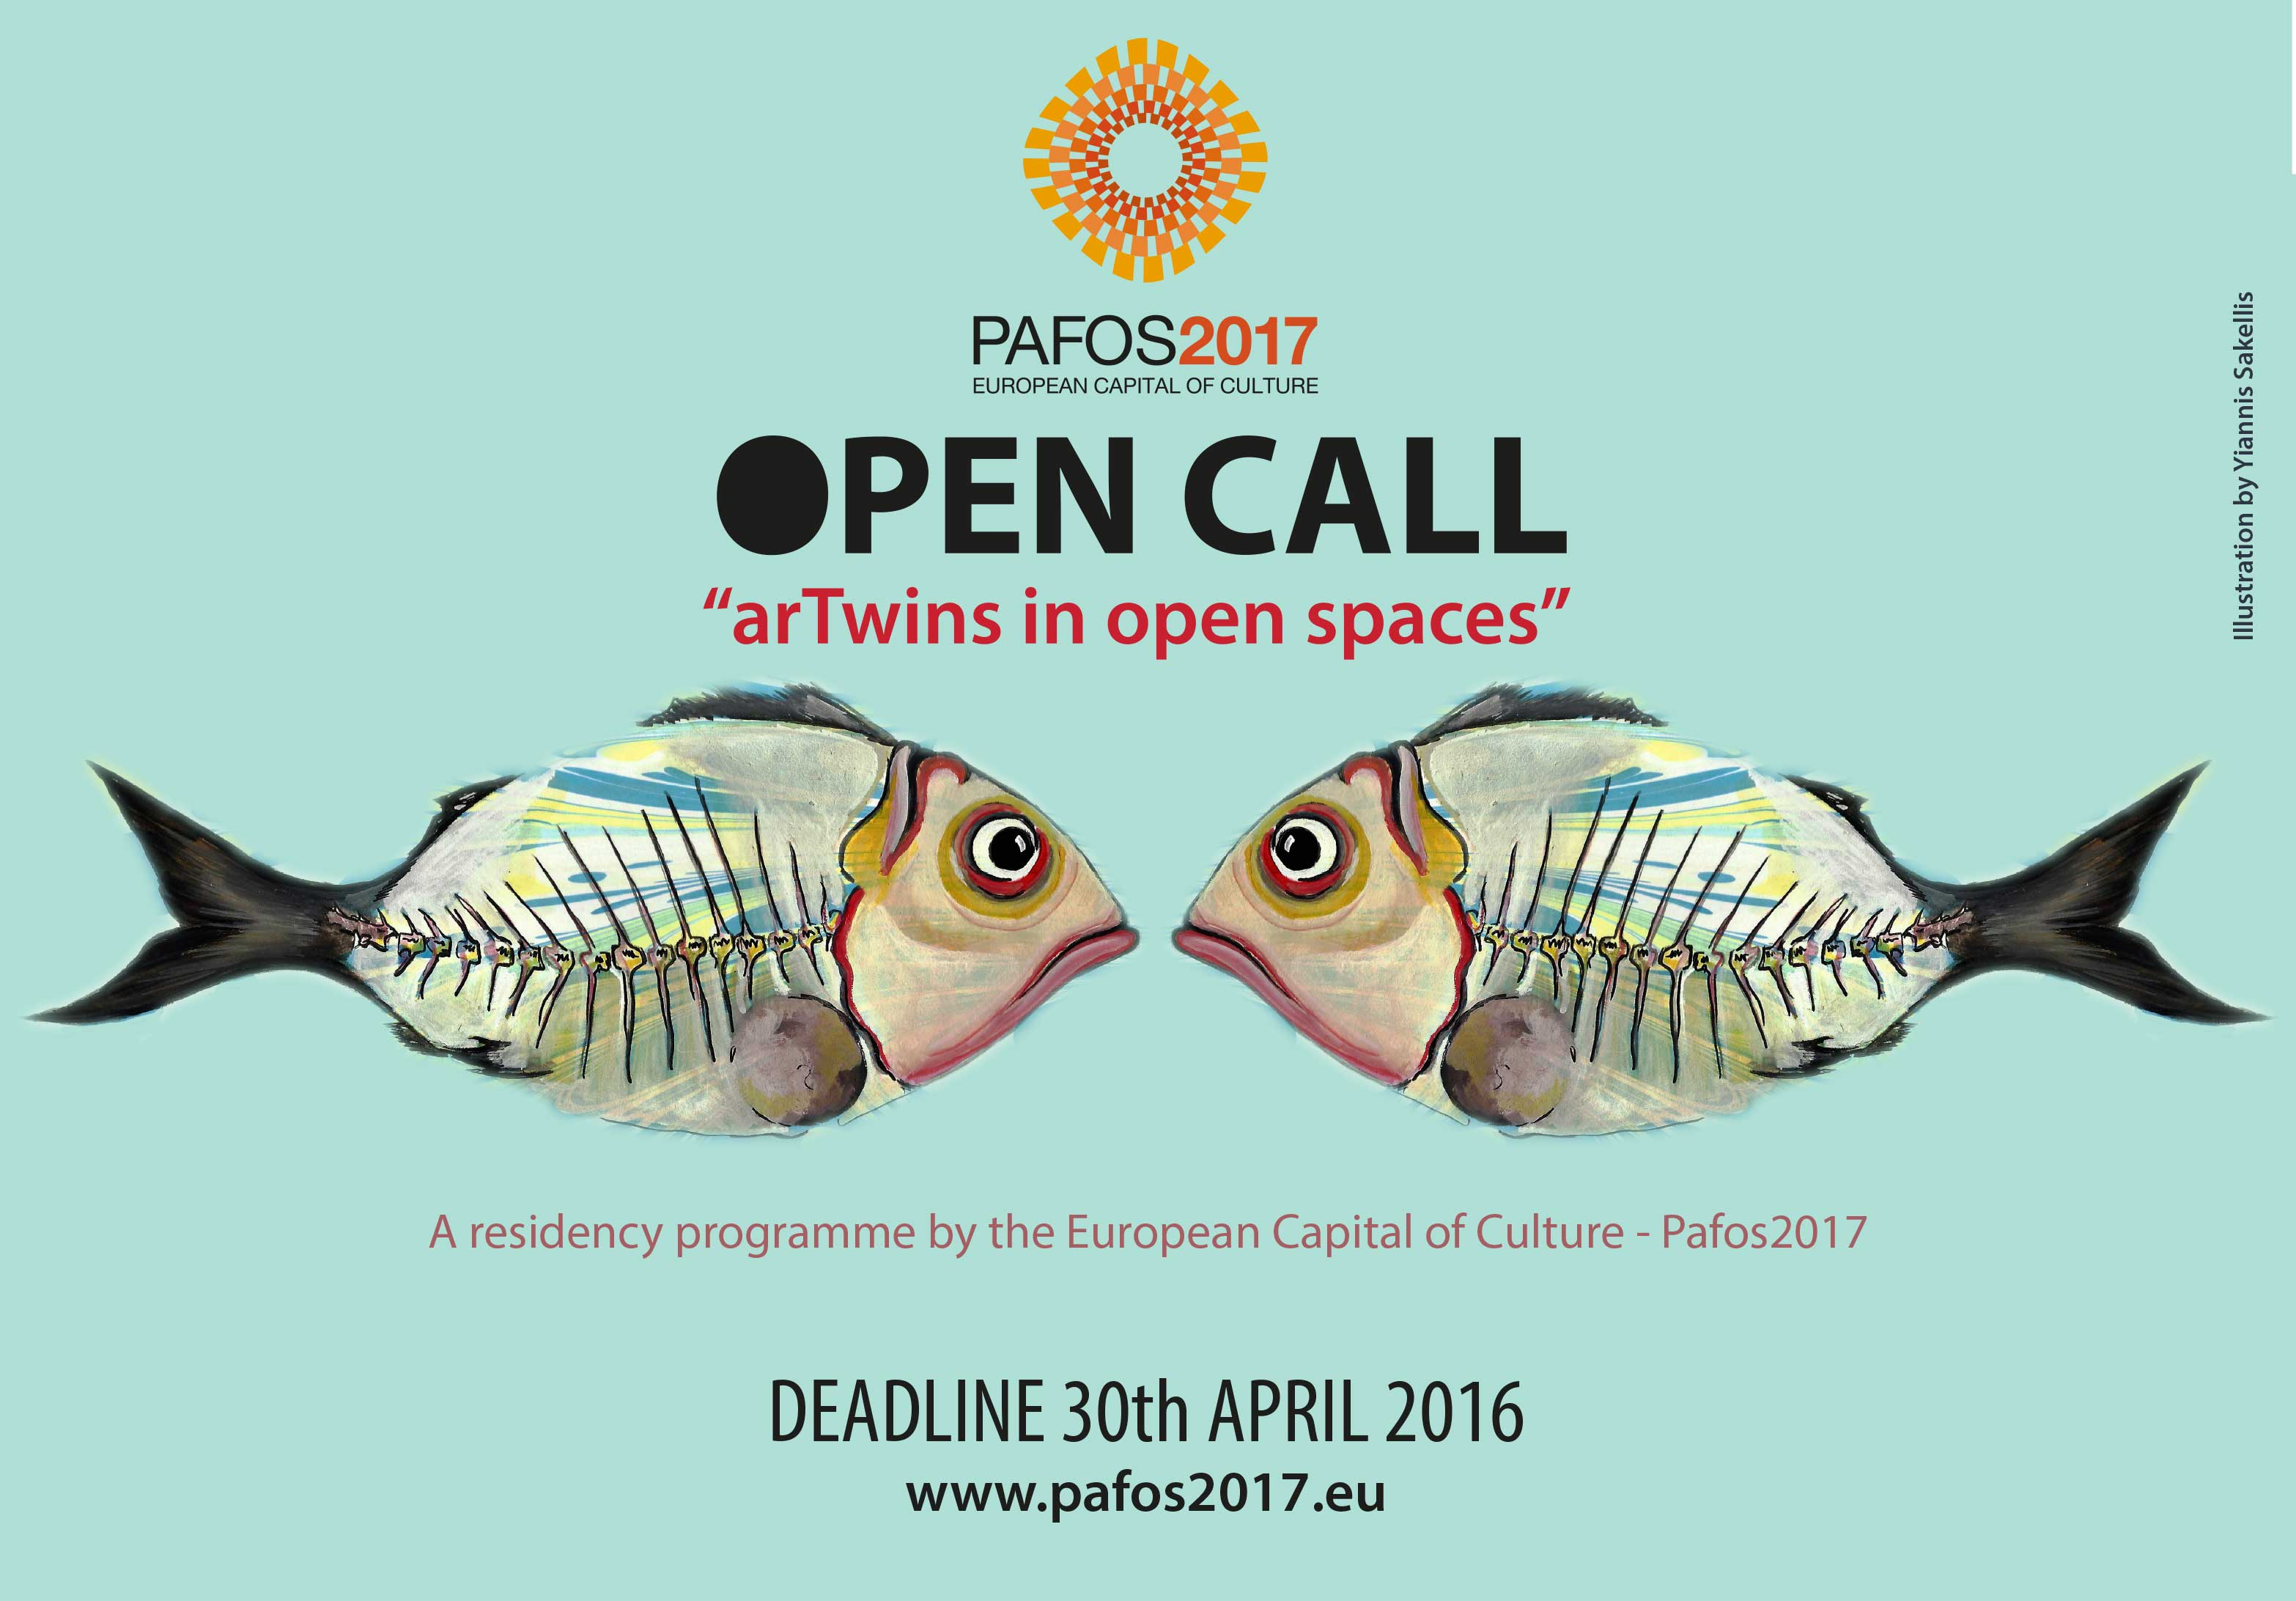 PAFOS2017-OPEN-CALL_artTwins_web